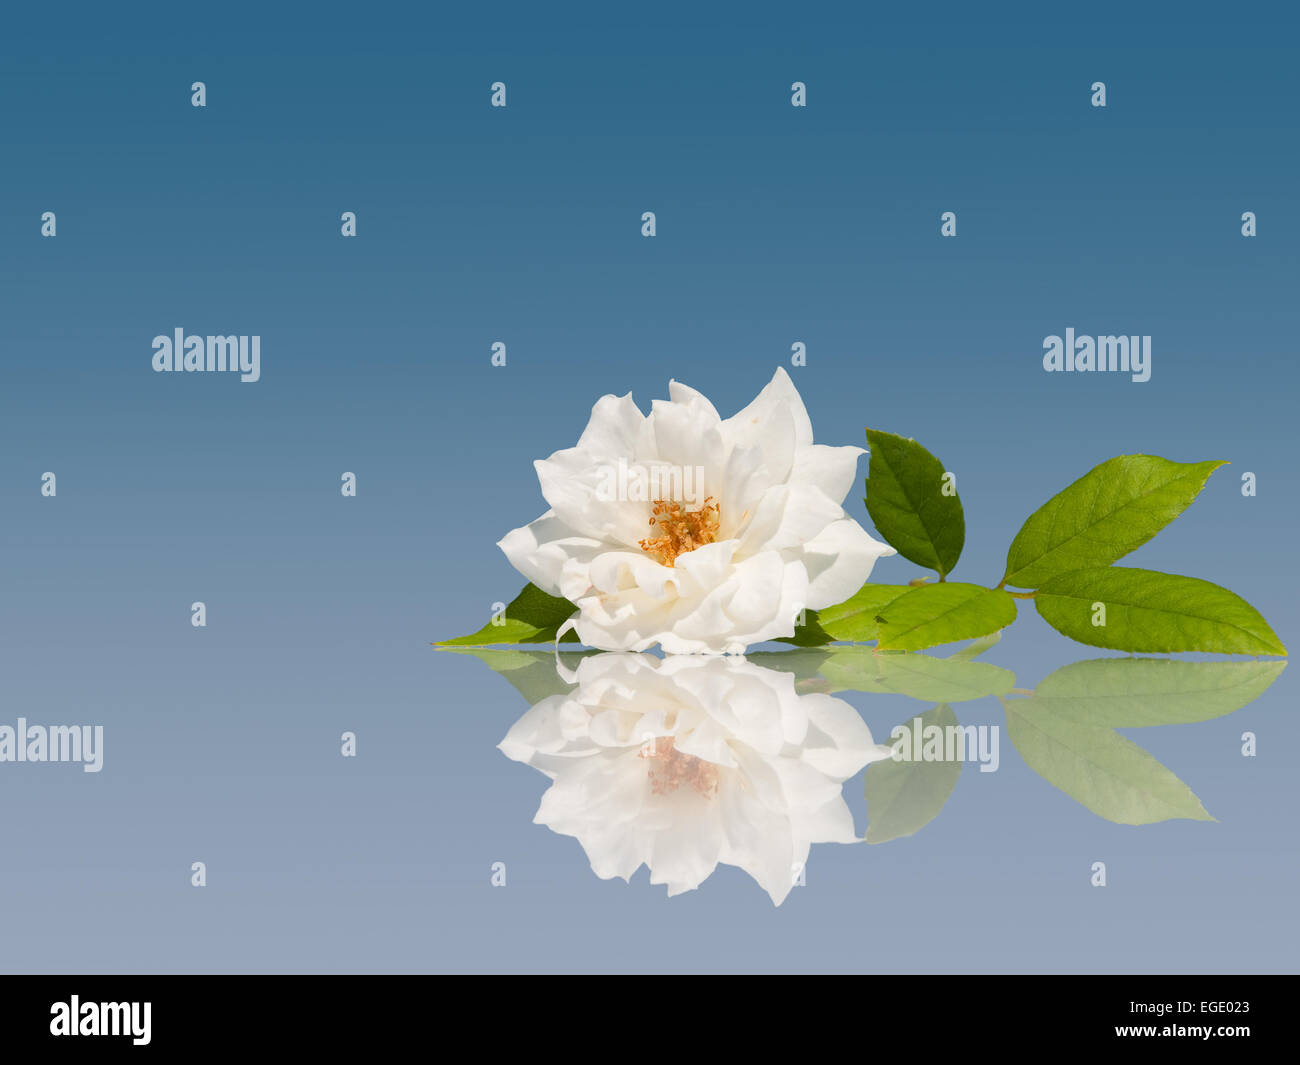 Delicate white rose on light blue background with reflection Stock Photo